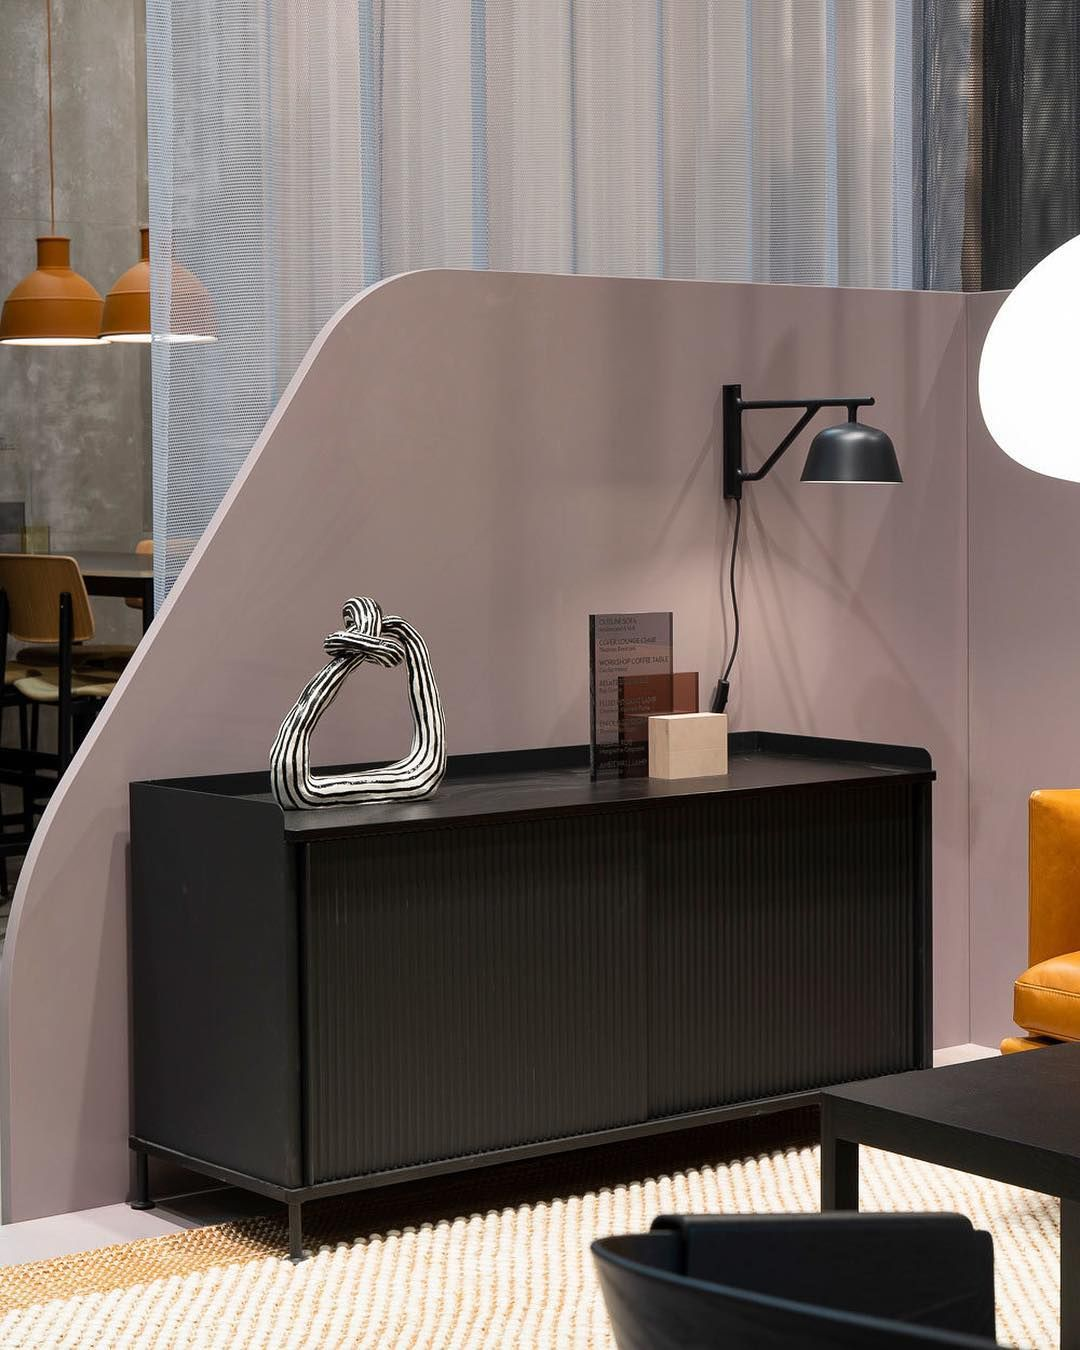 Easy on the eye—the Enfold Sideboard and Ambit Wall Lamp ...